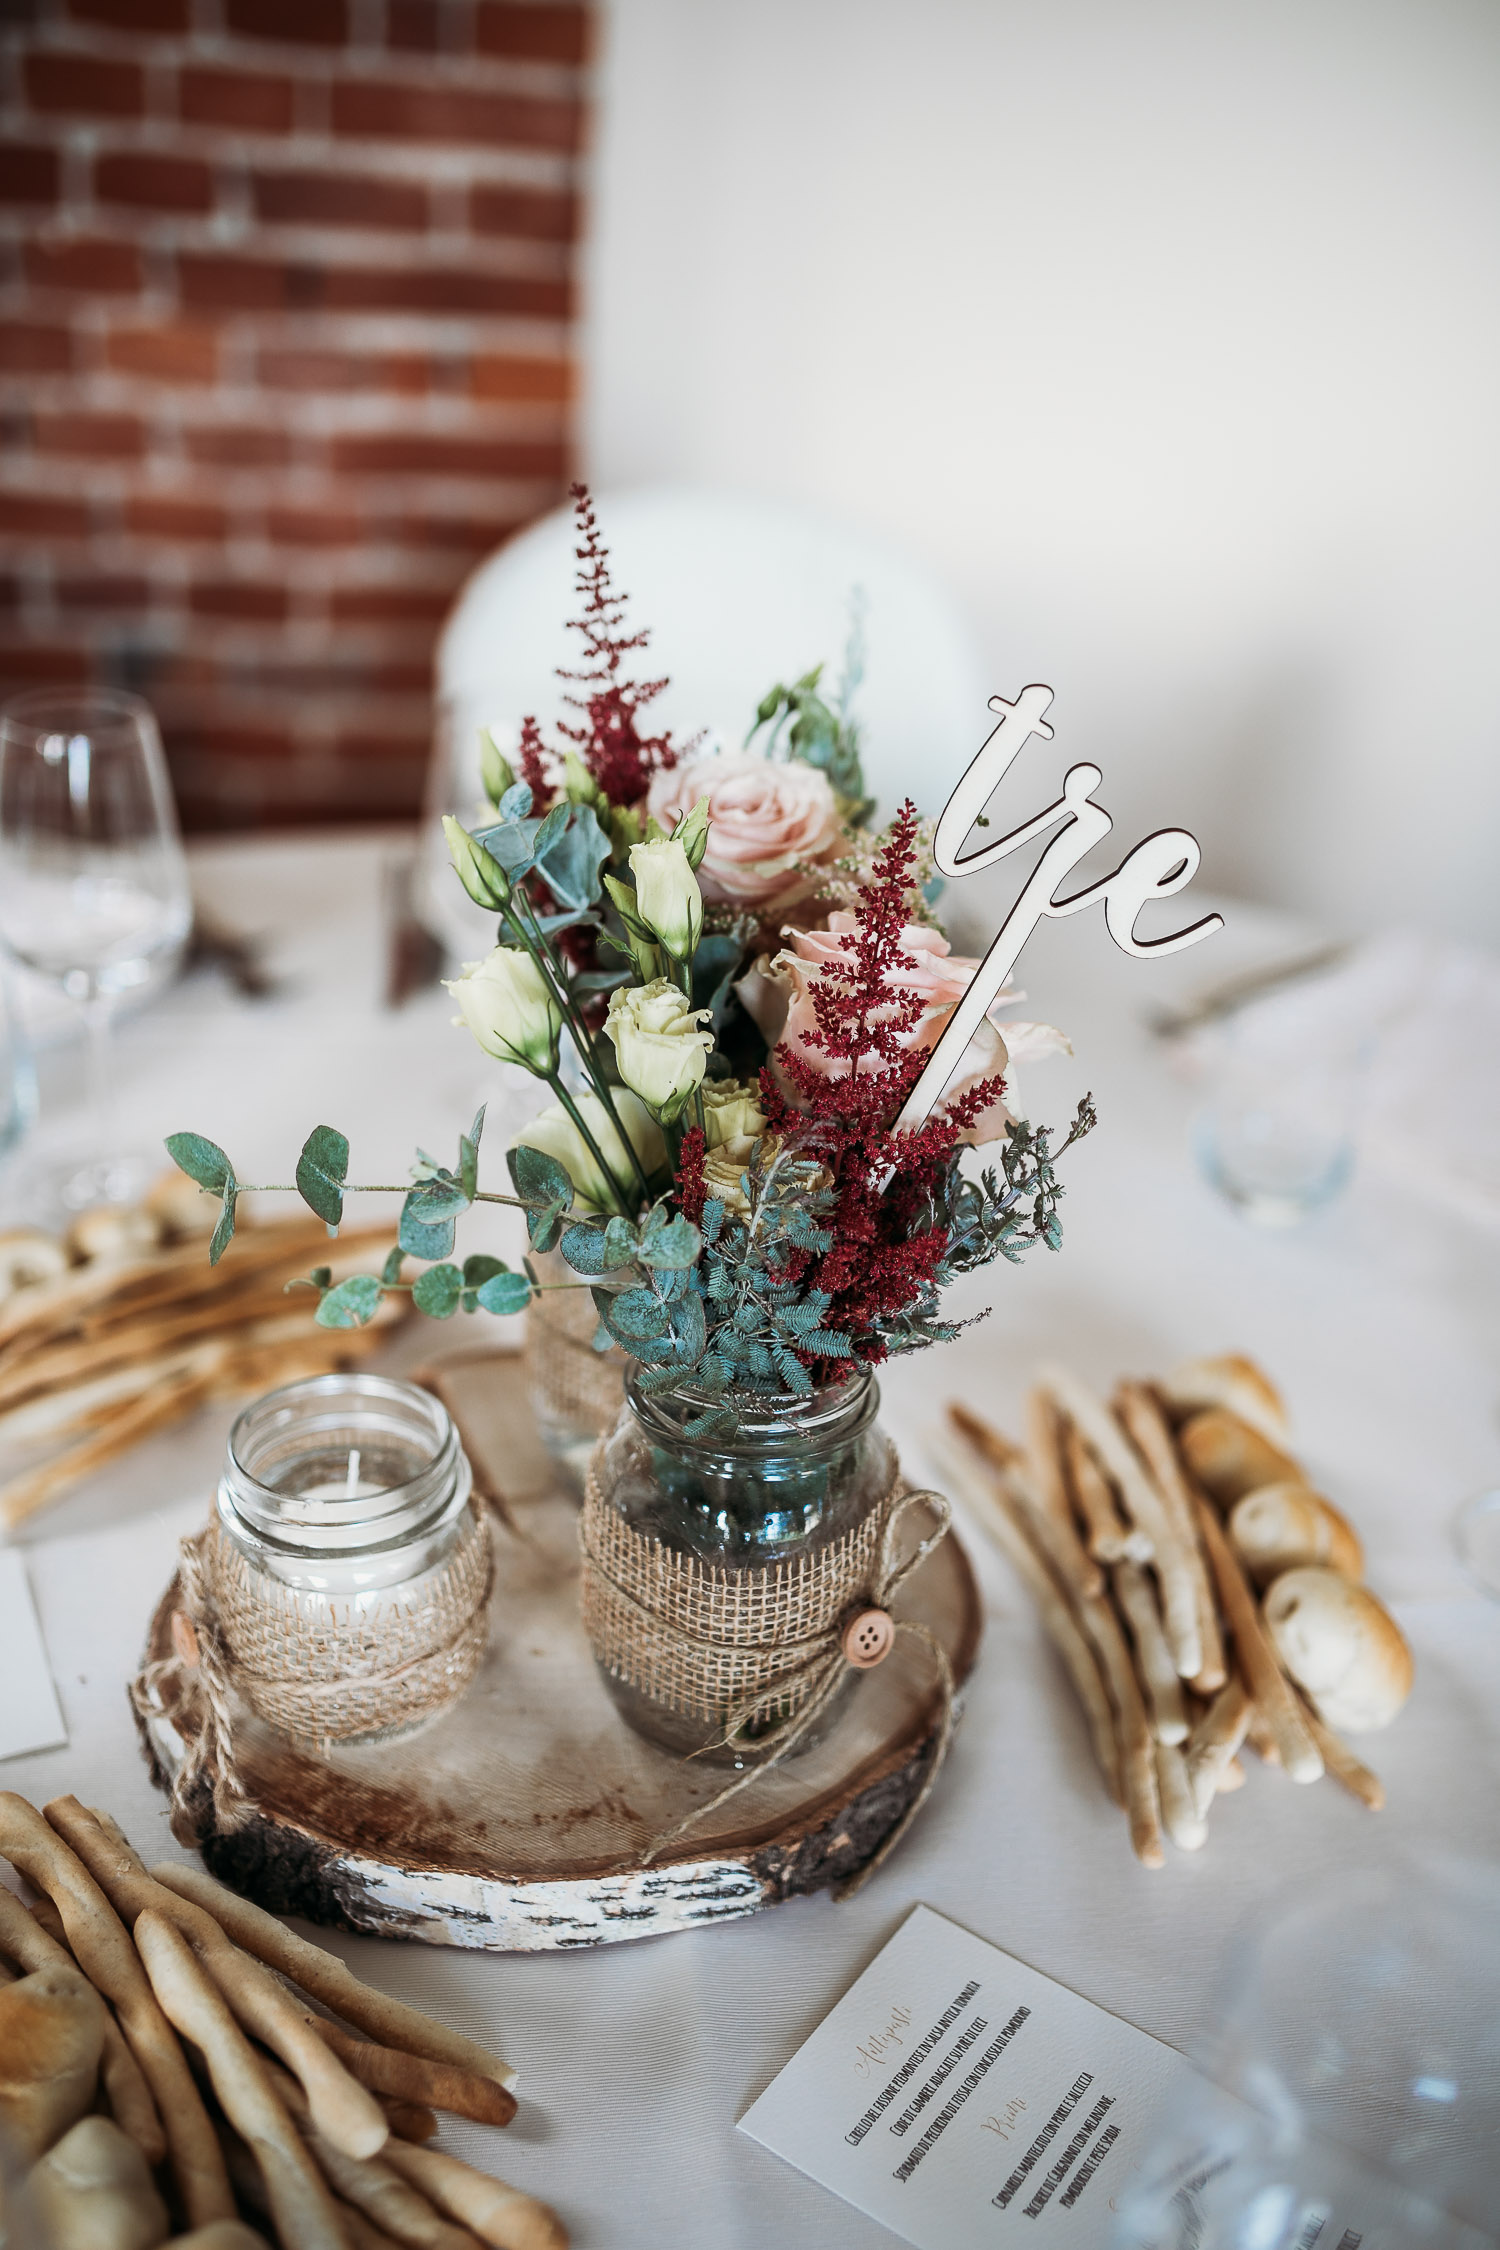 Centerpiece with wood and candles